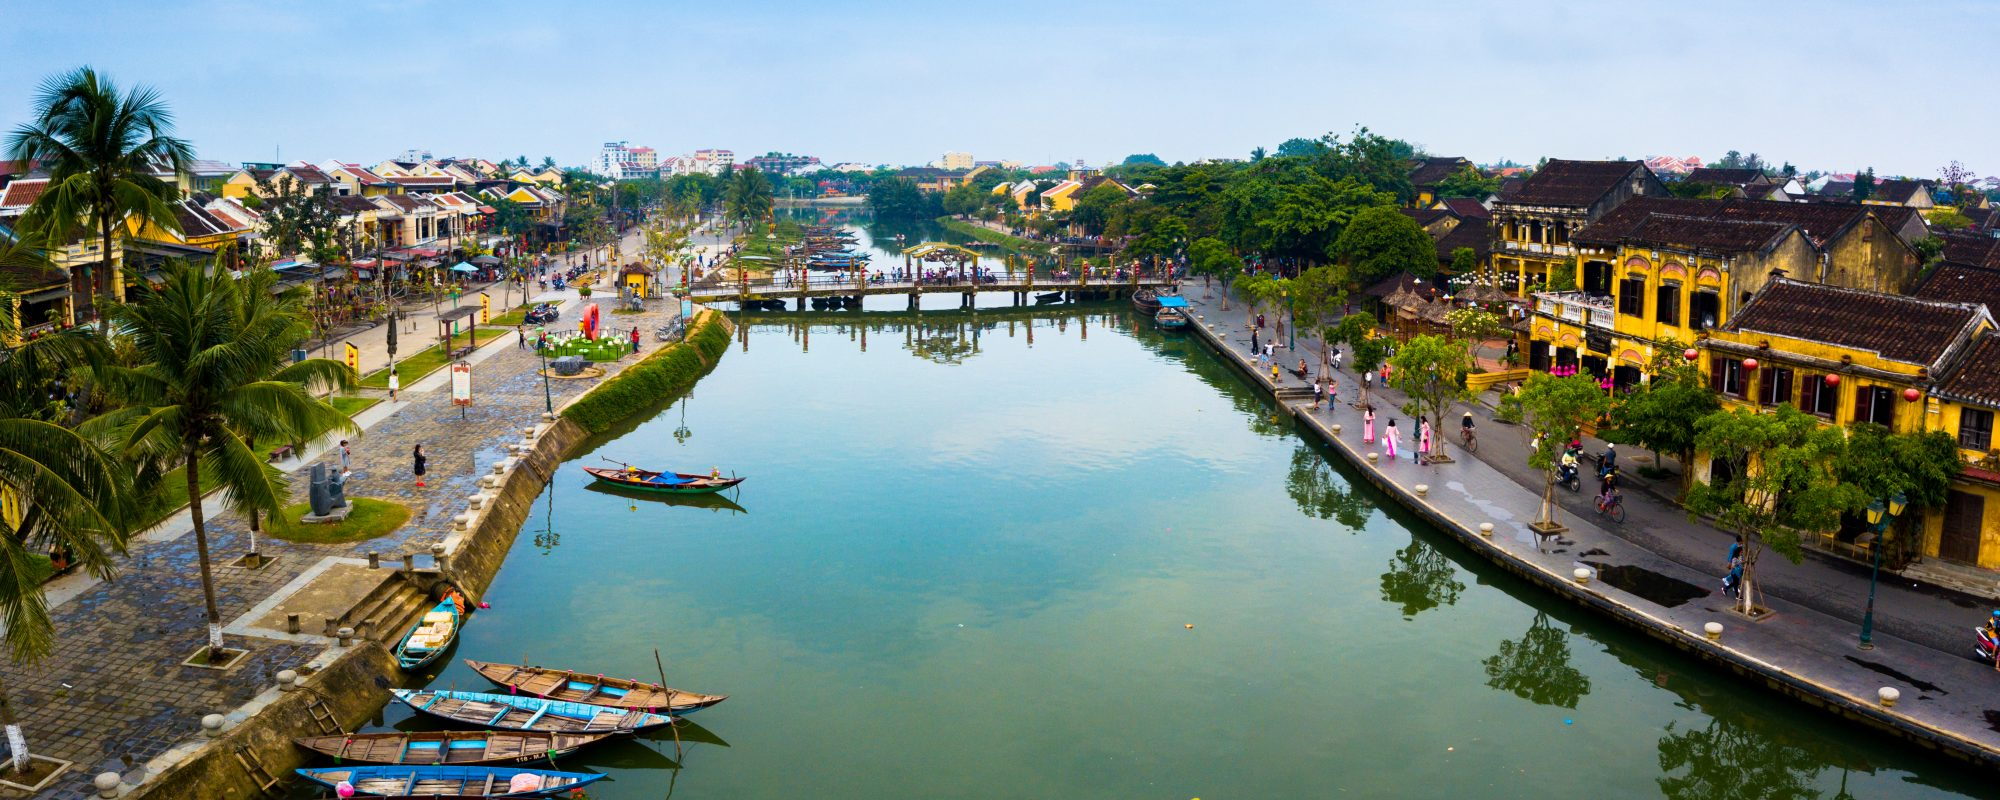 Getting from Hanoi to Hoi An